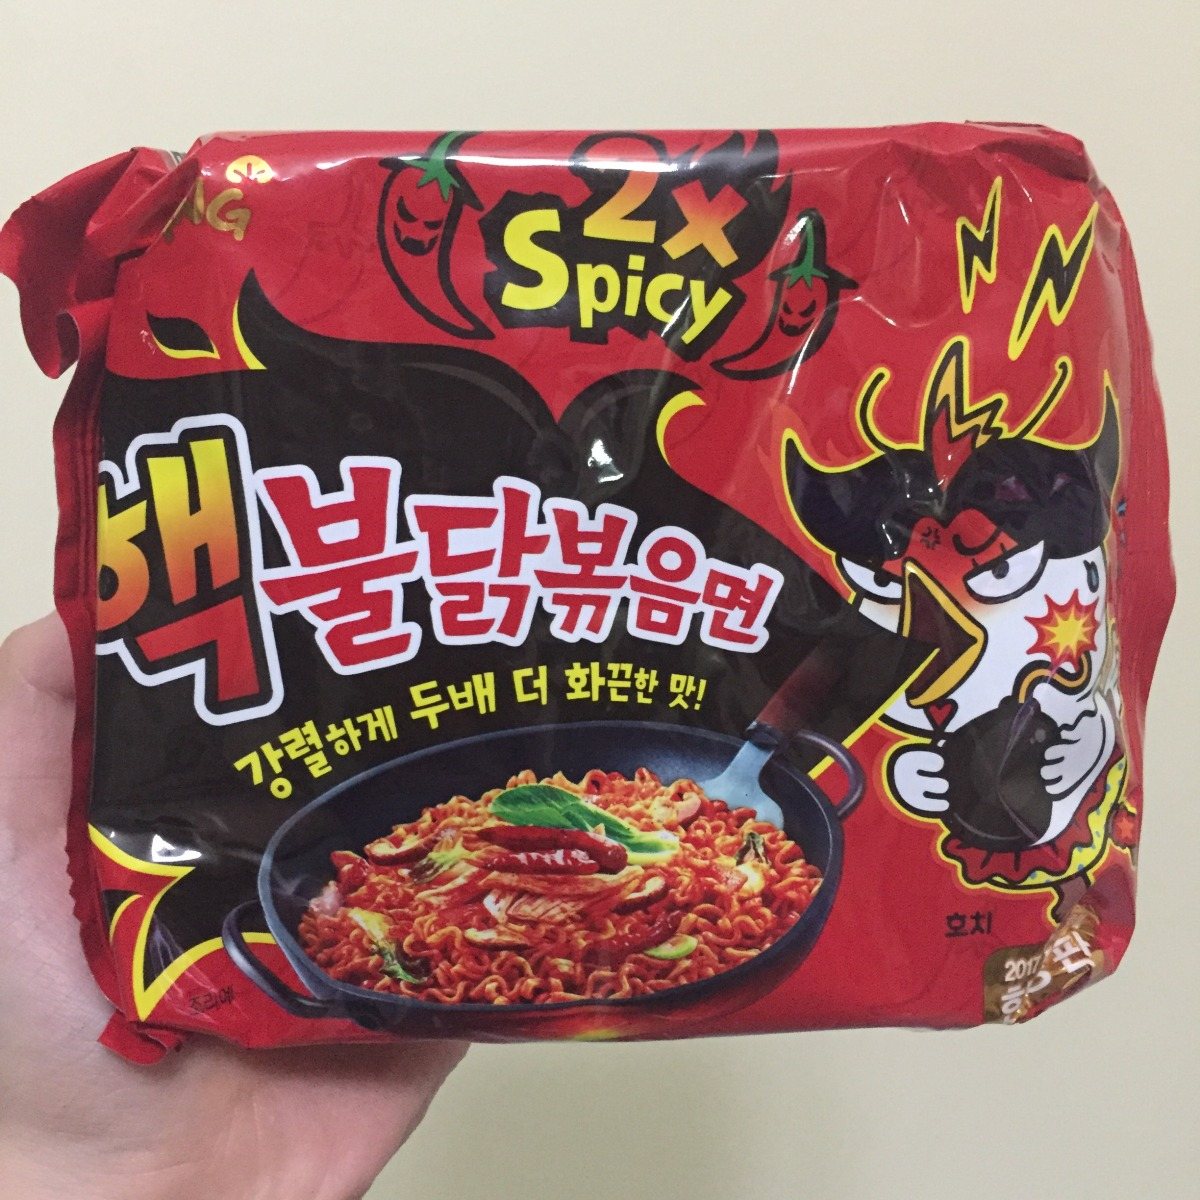 Samyang 2x Spicy Haek Buldak Bokkeummyeon Review Part 2